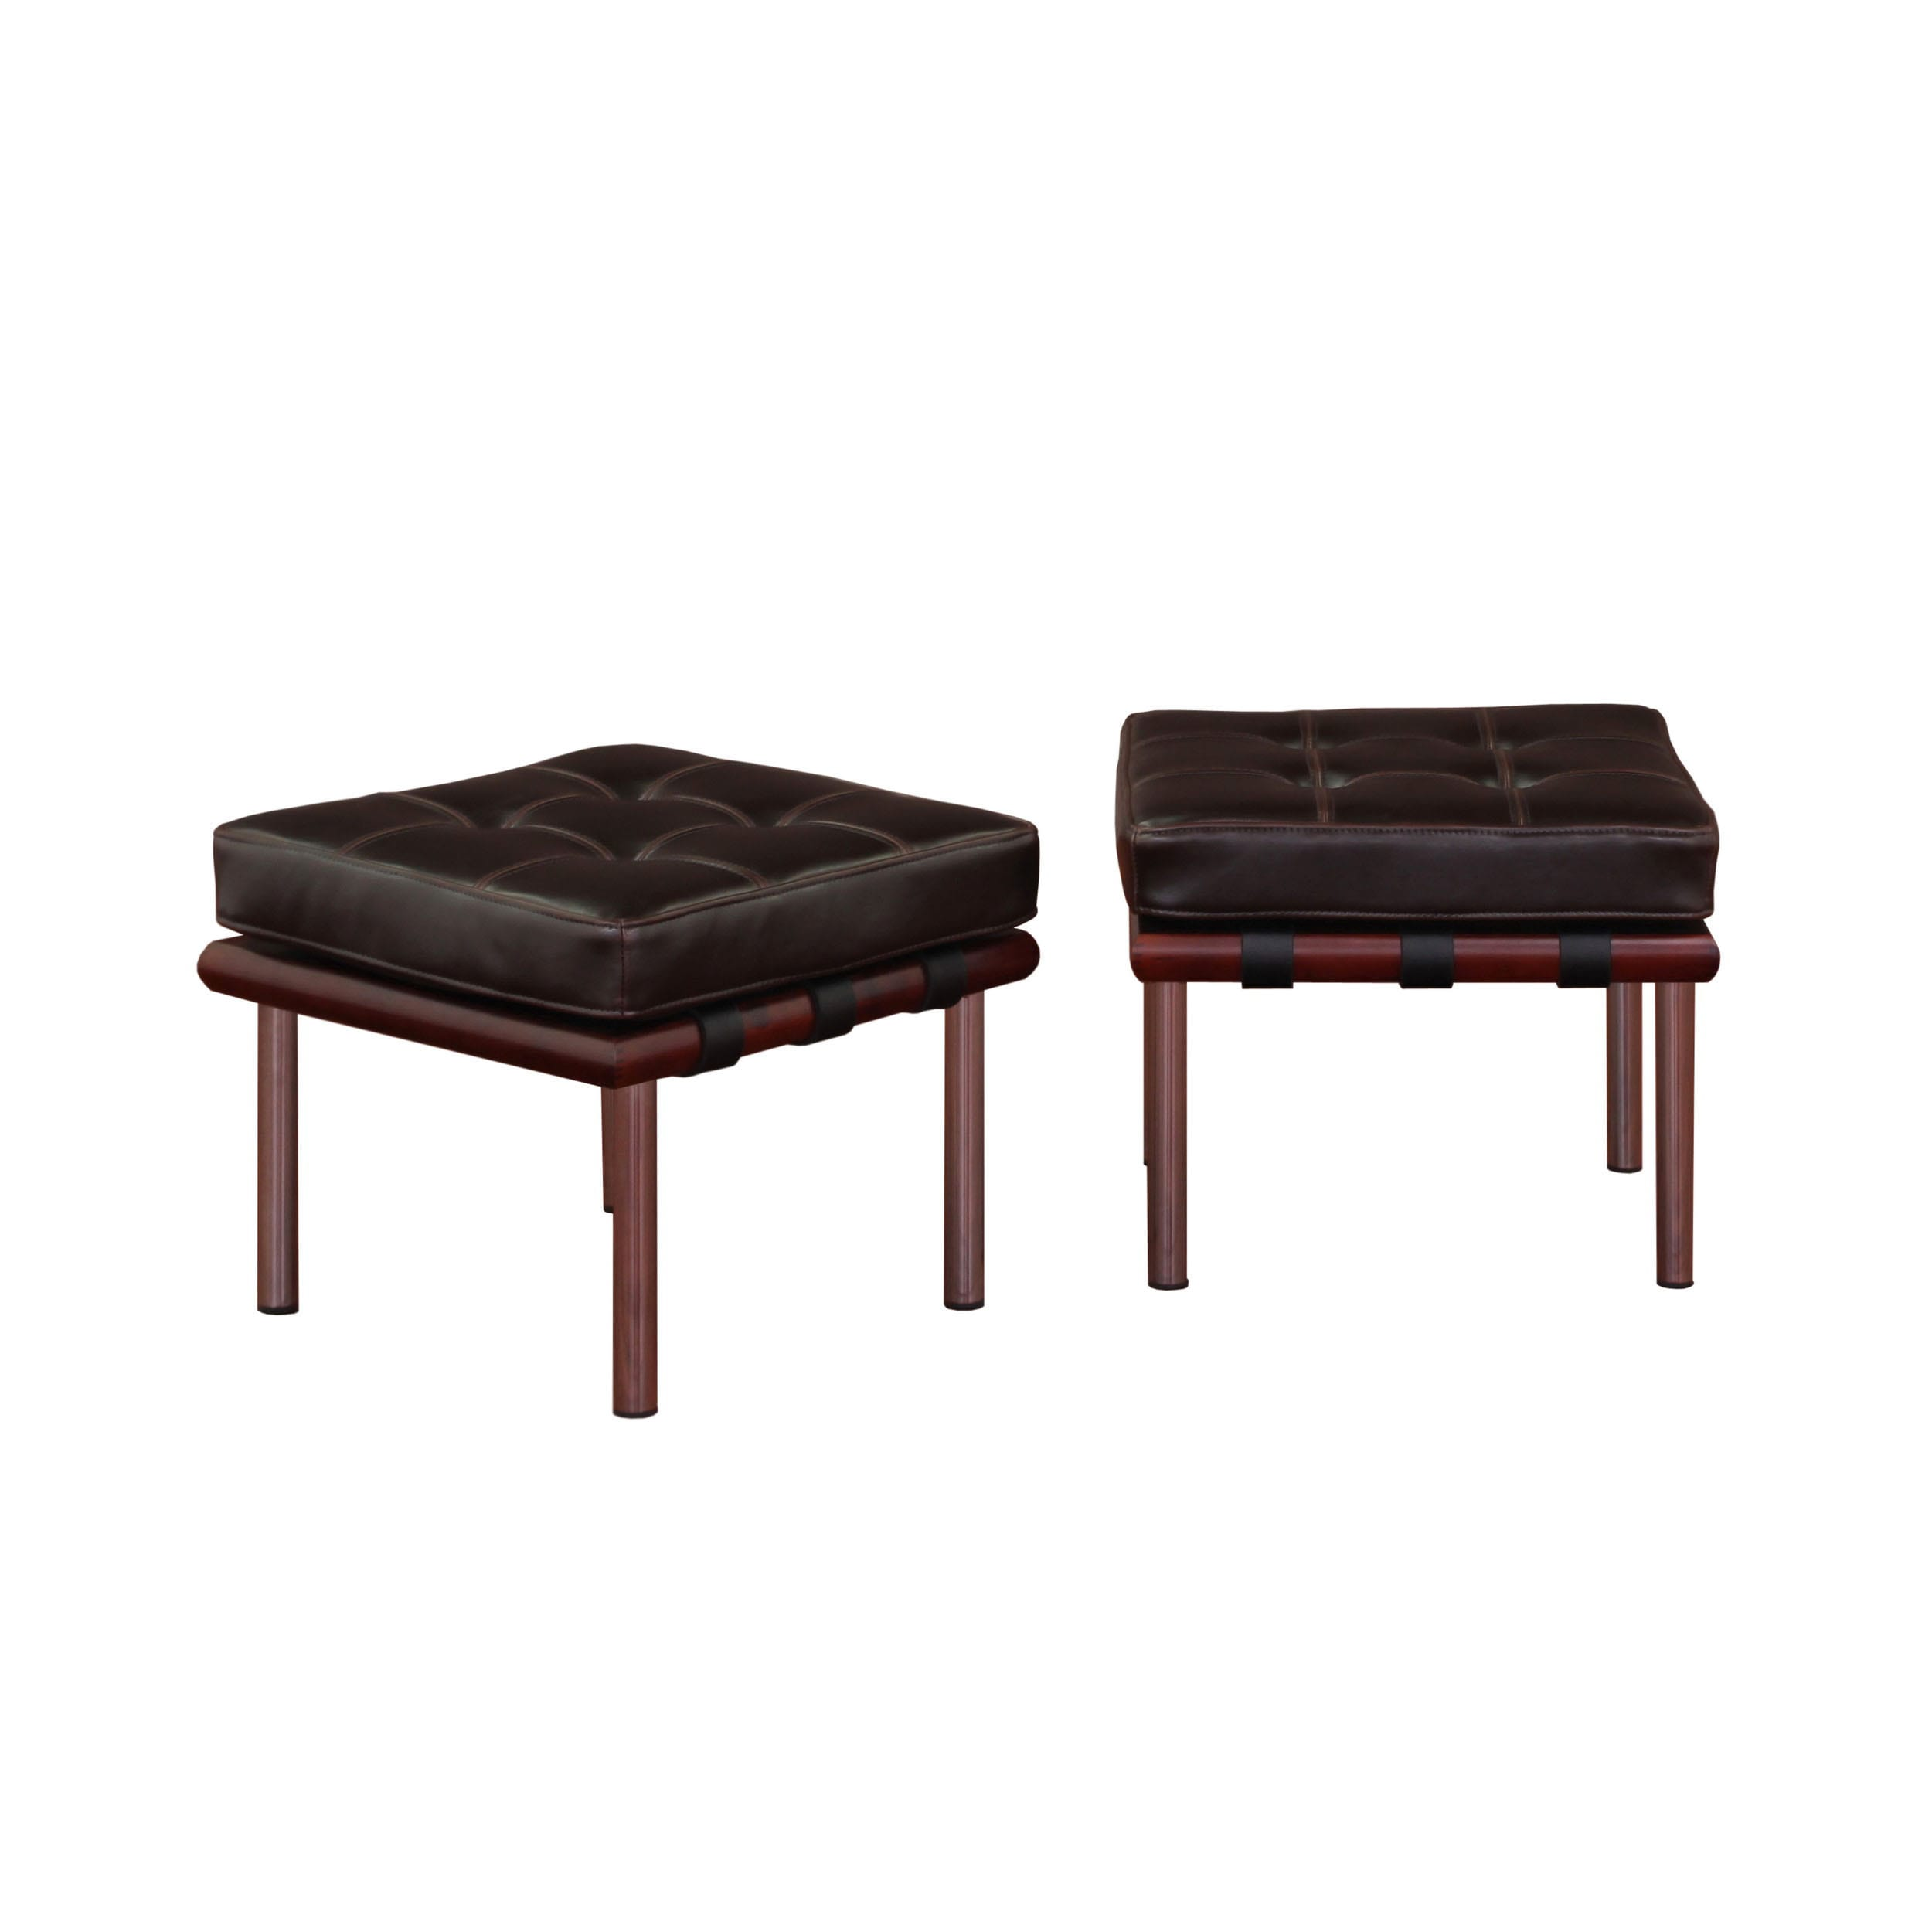 Andalucia Dark Brown Leather Ottomans Set of 2 Free Shipping